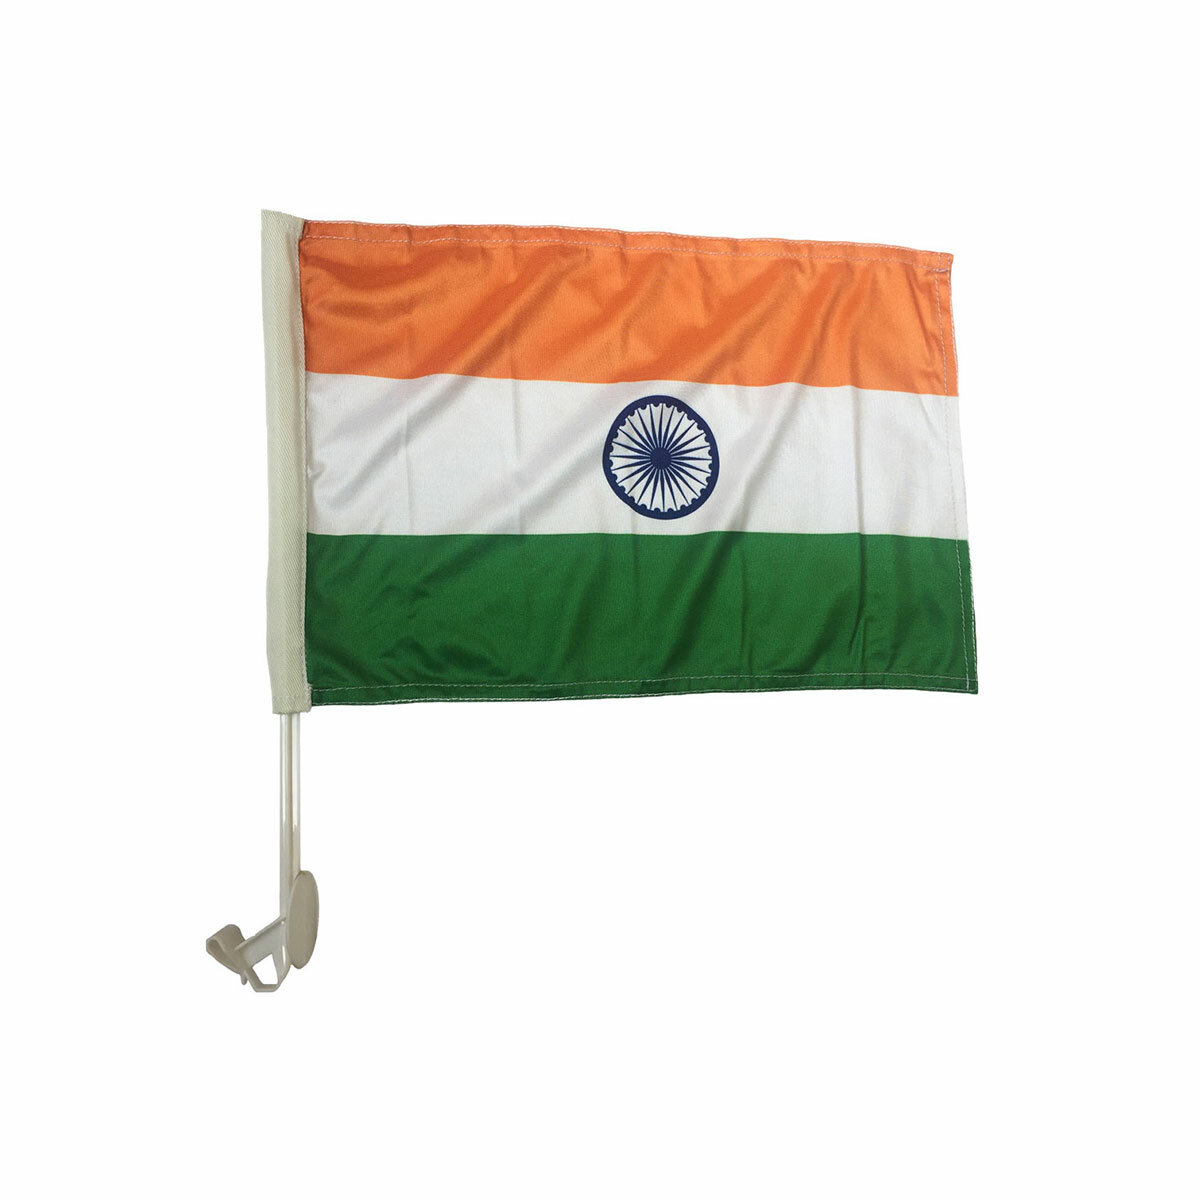 car window indian flag with plastic staff for mounting